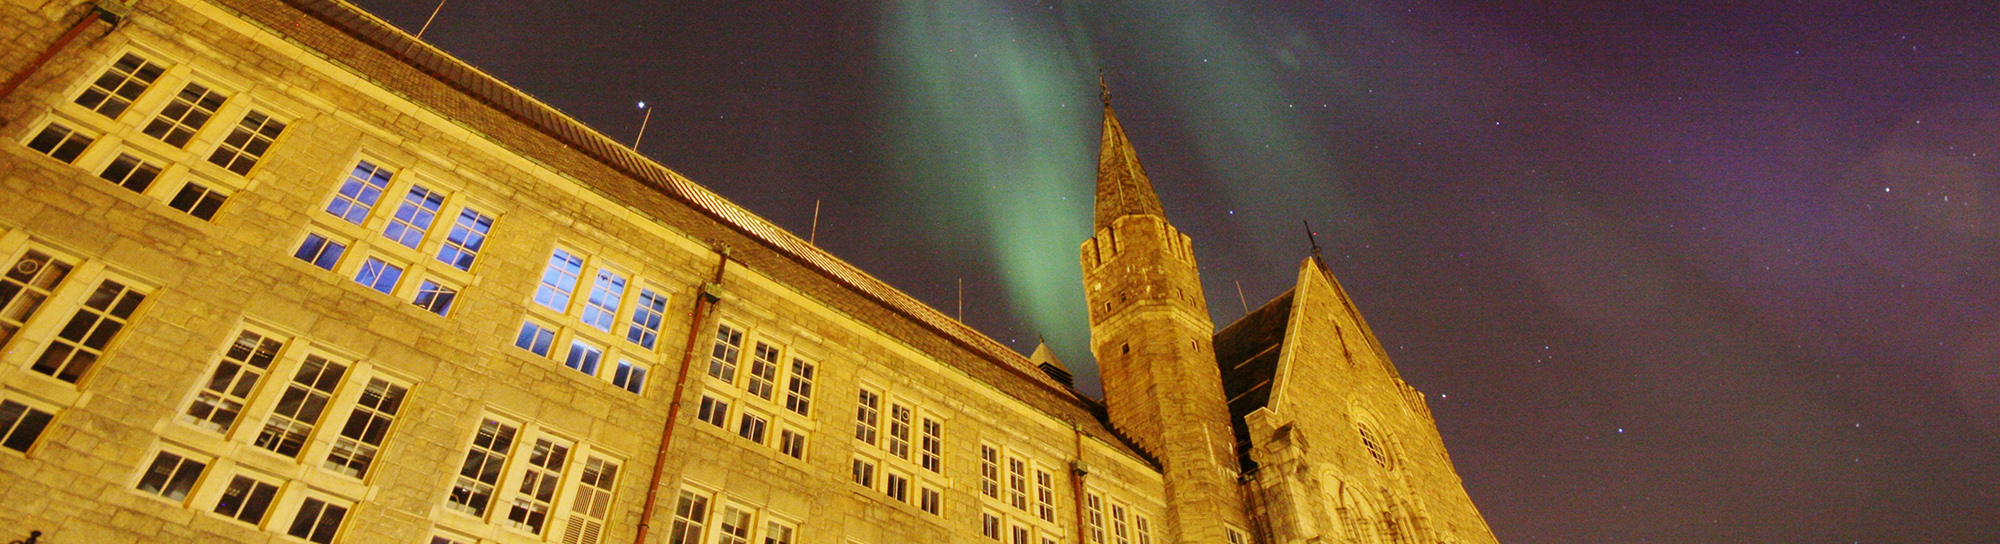 NTNU Main Administration Building with Northern Light, March 17 2015. Photo: Maxime Landrot / NTNU Comm.Div.